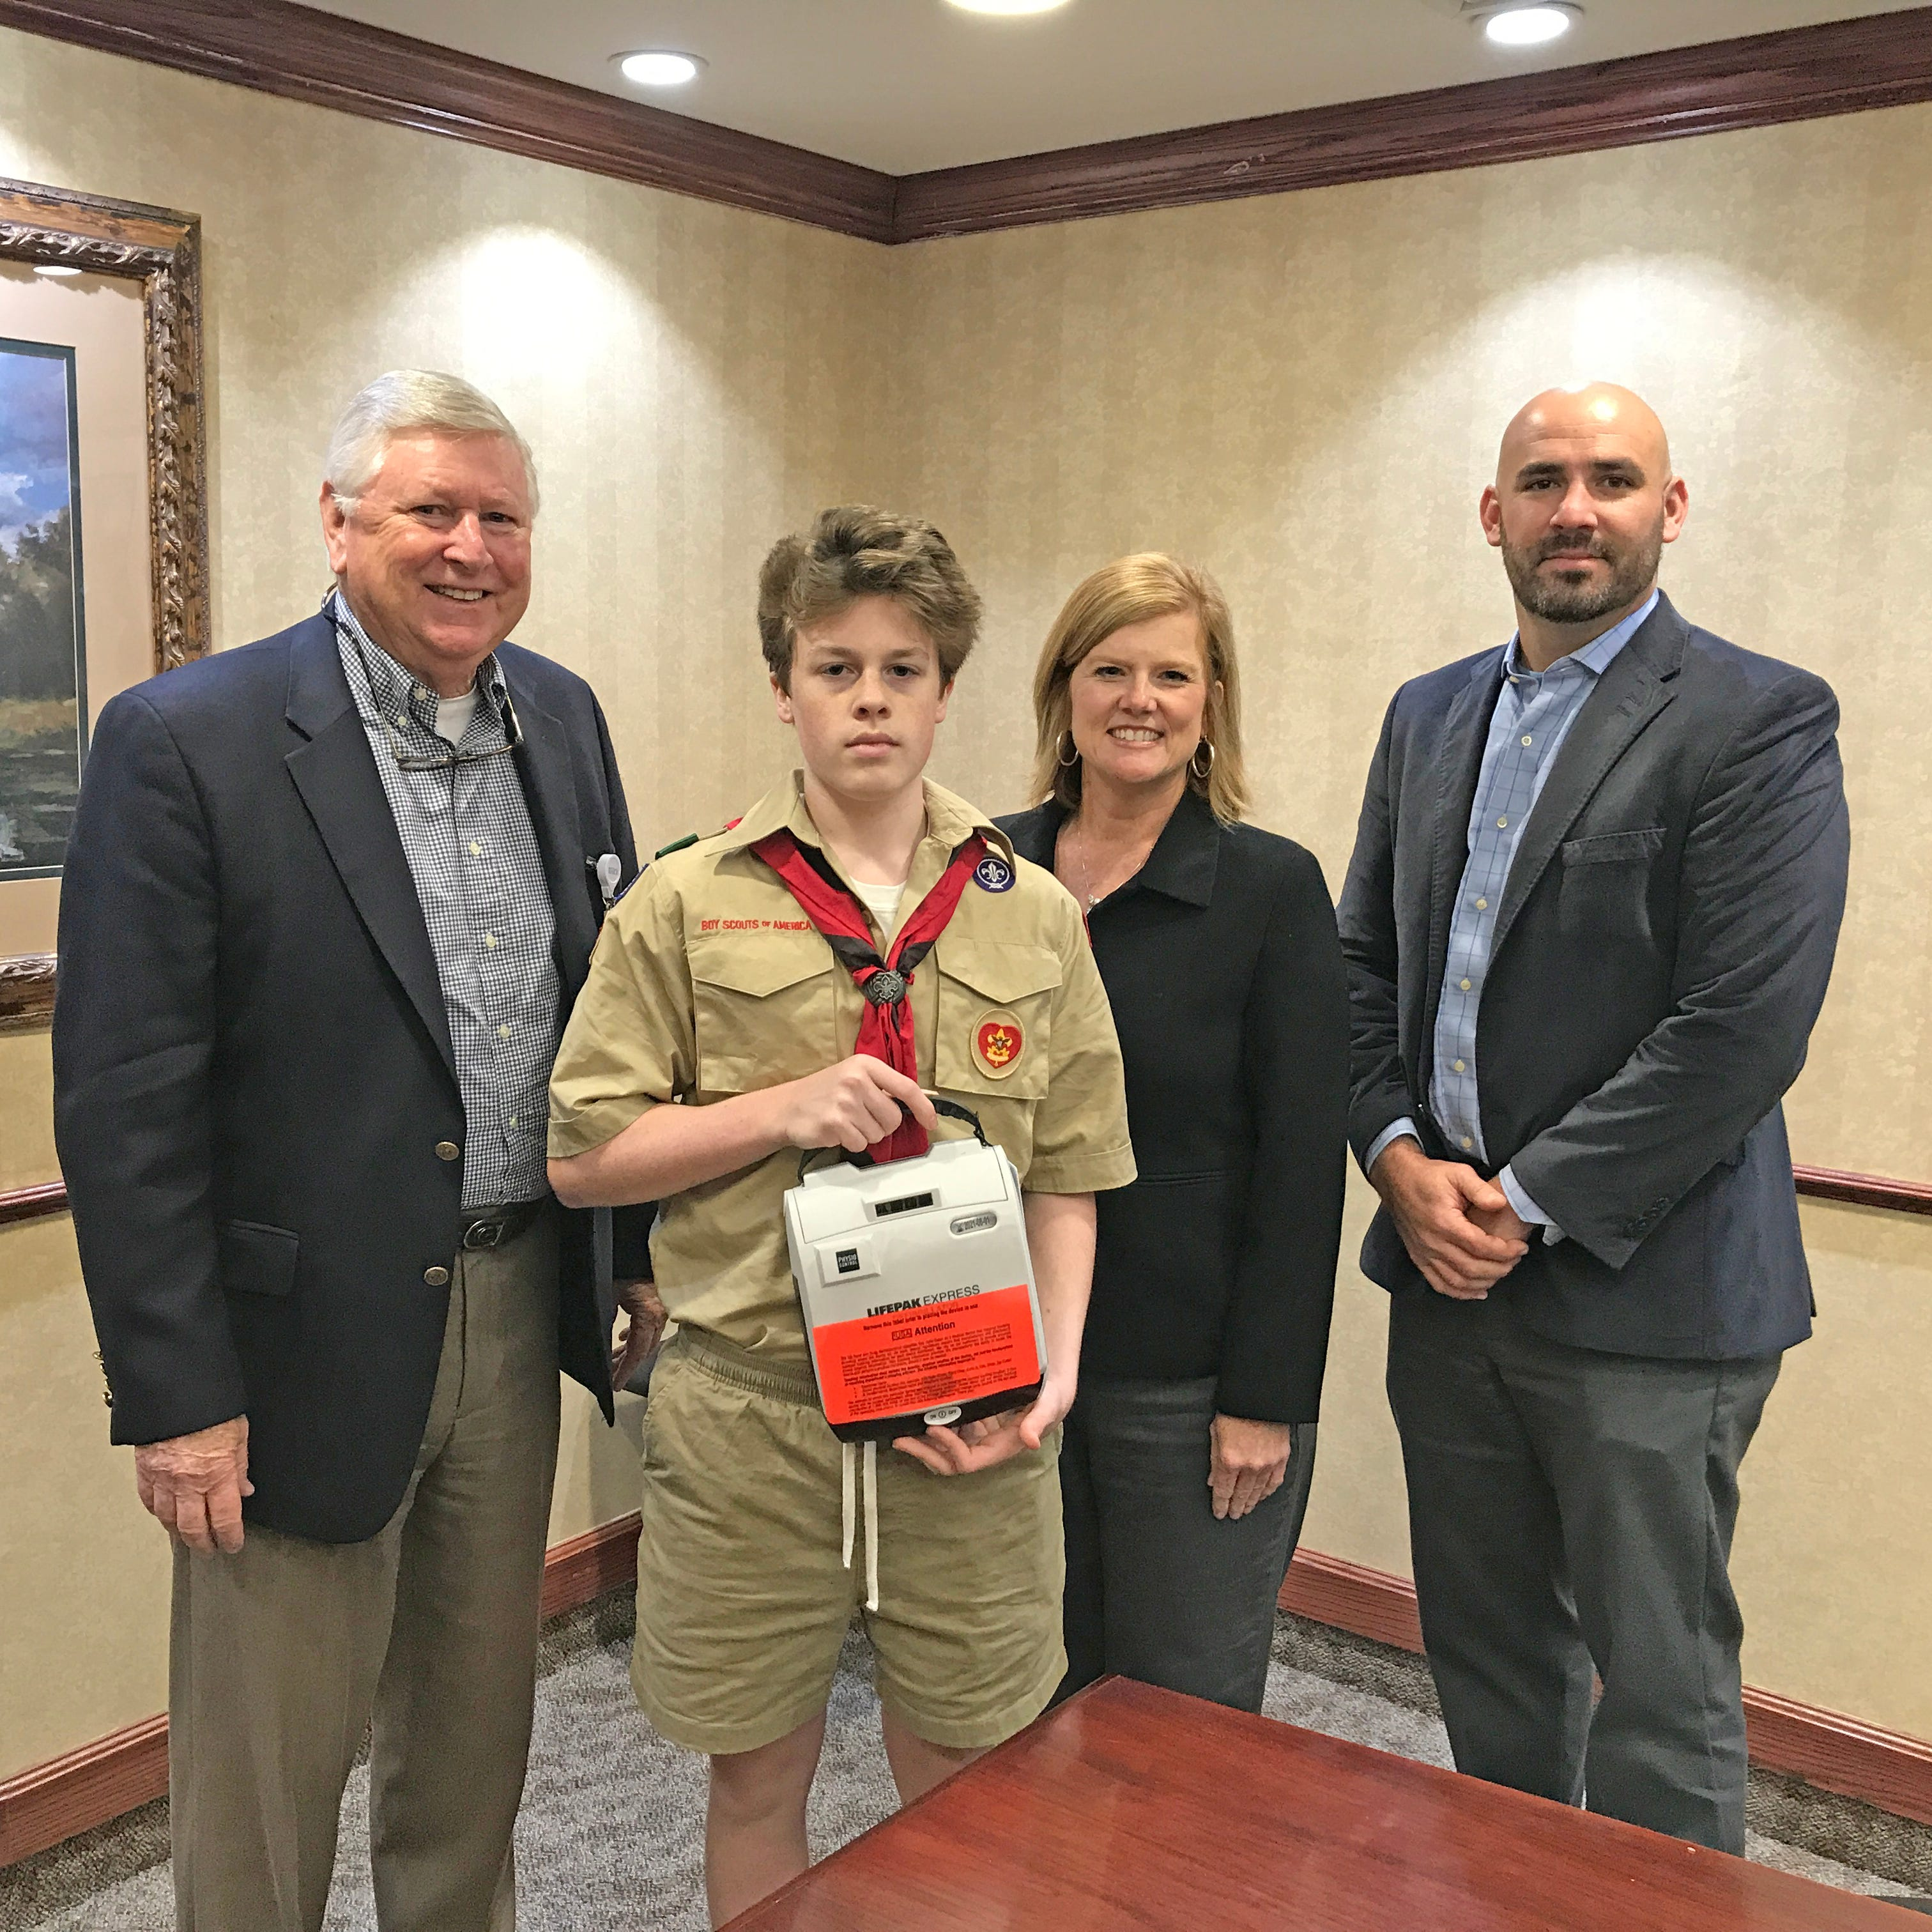 Eagle Scout project leads to new Automated External Defibrillators across MHPS District